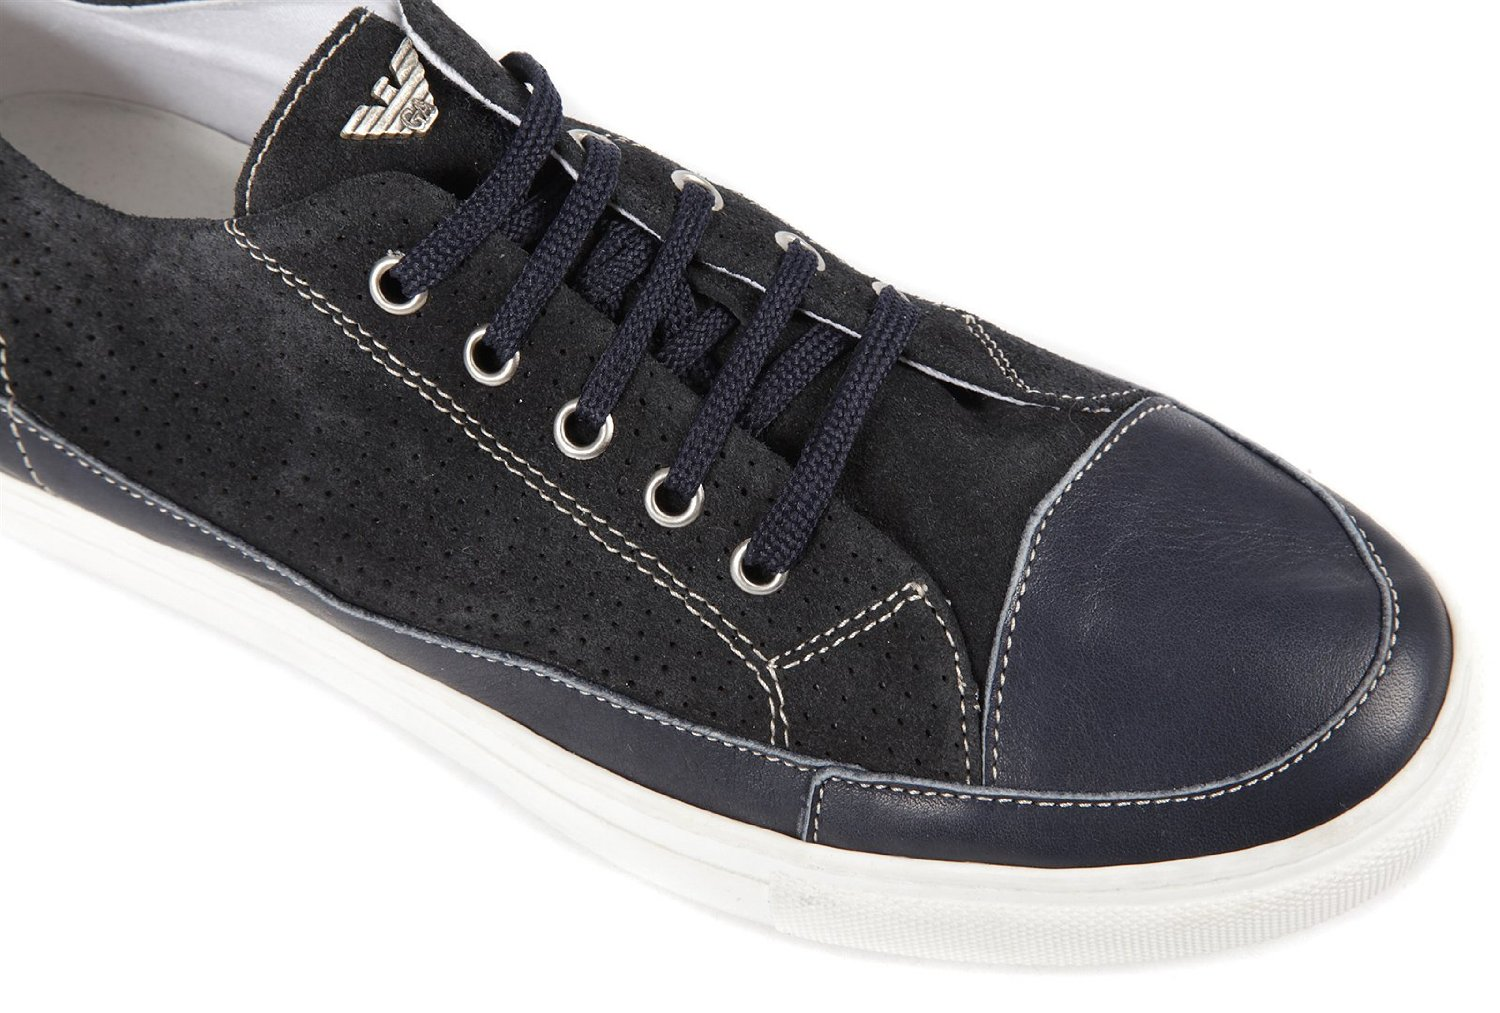 Armani Jeans men s shoes suede trainers sneakers blu Image 5